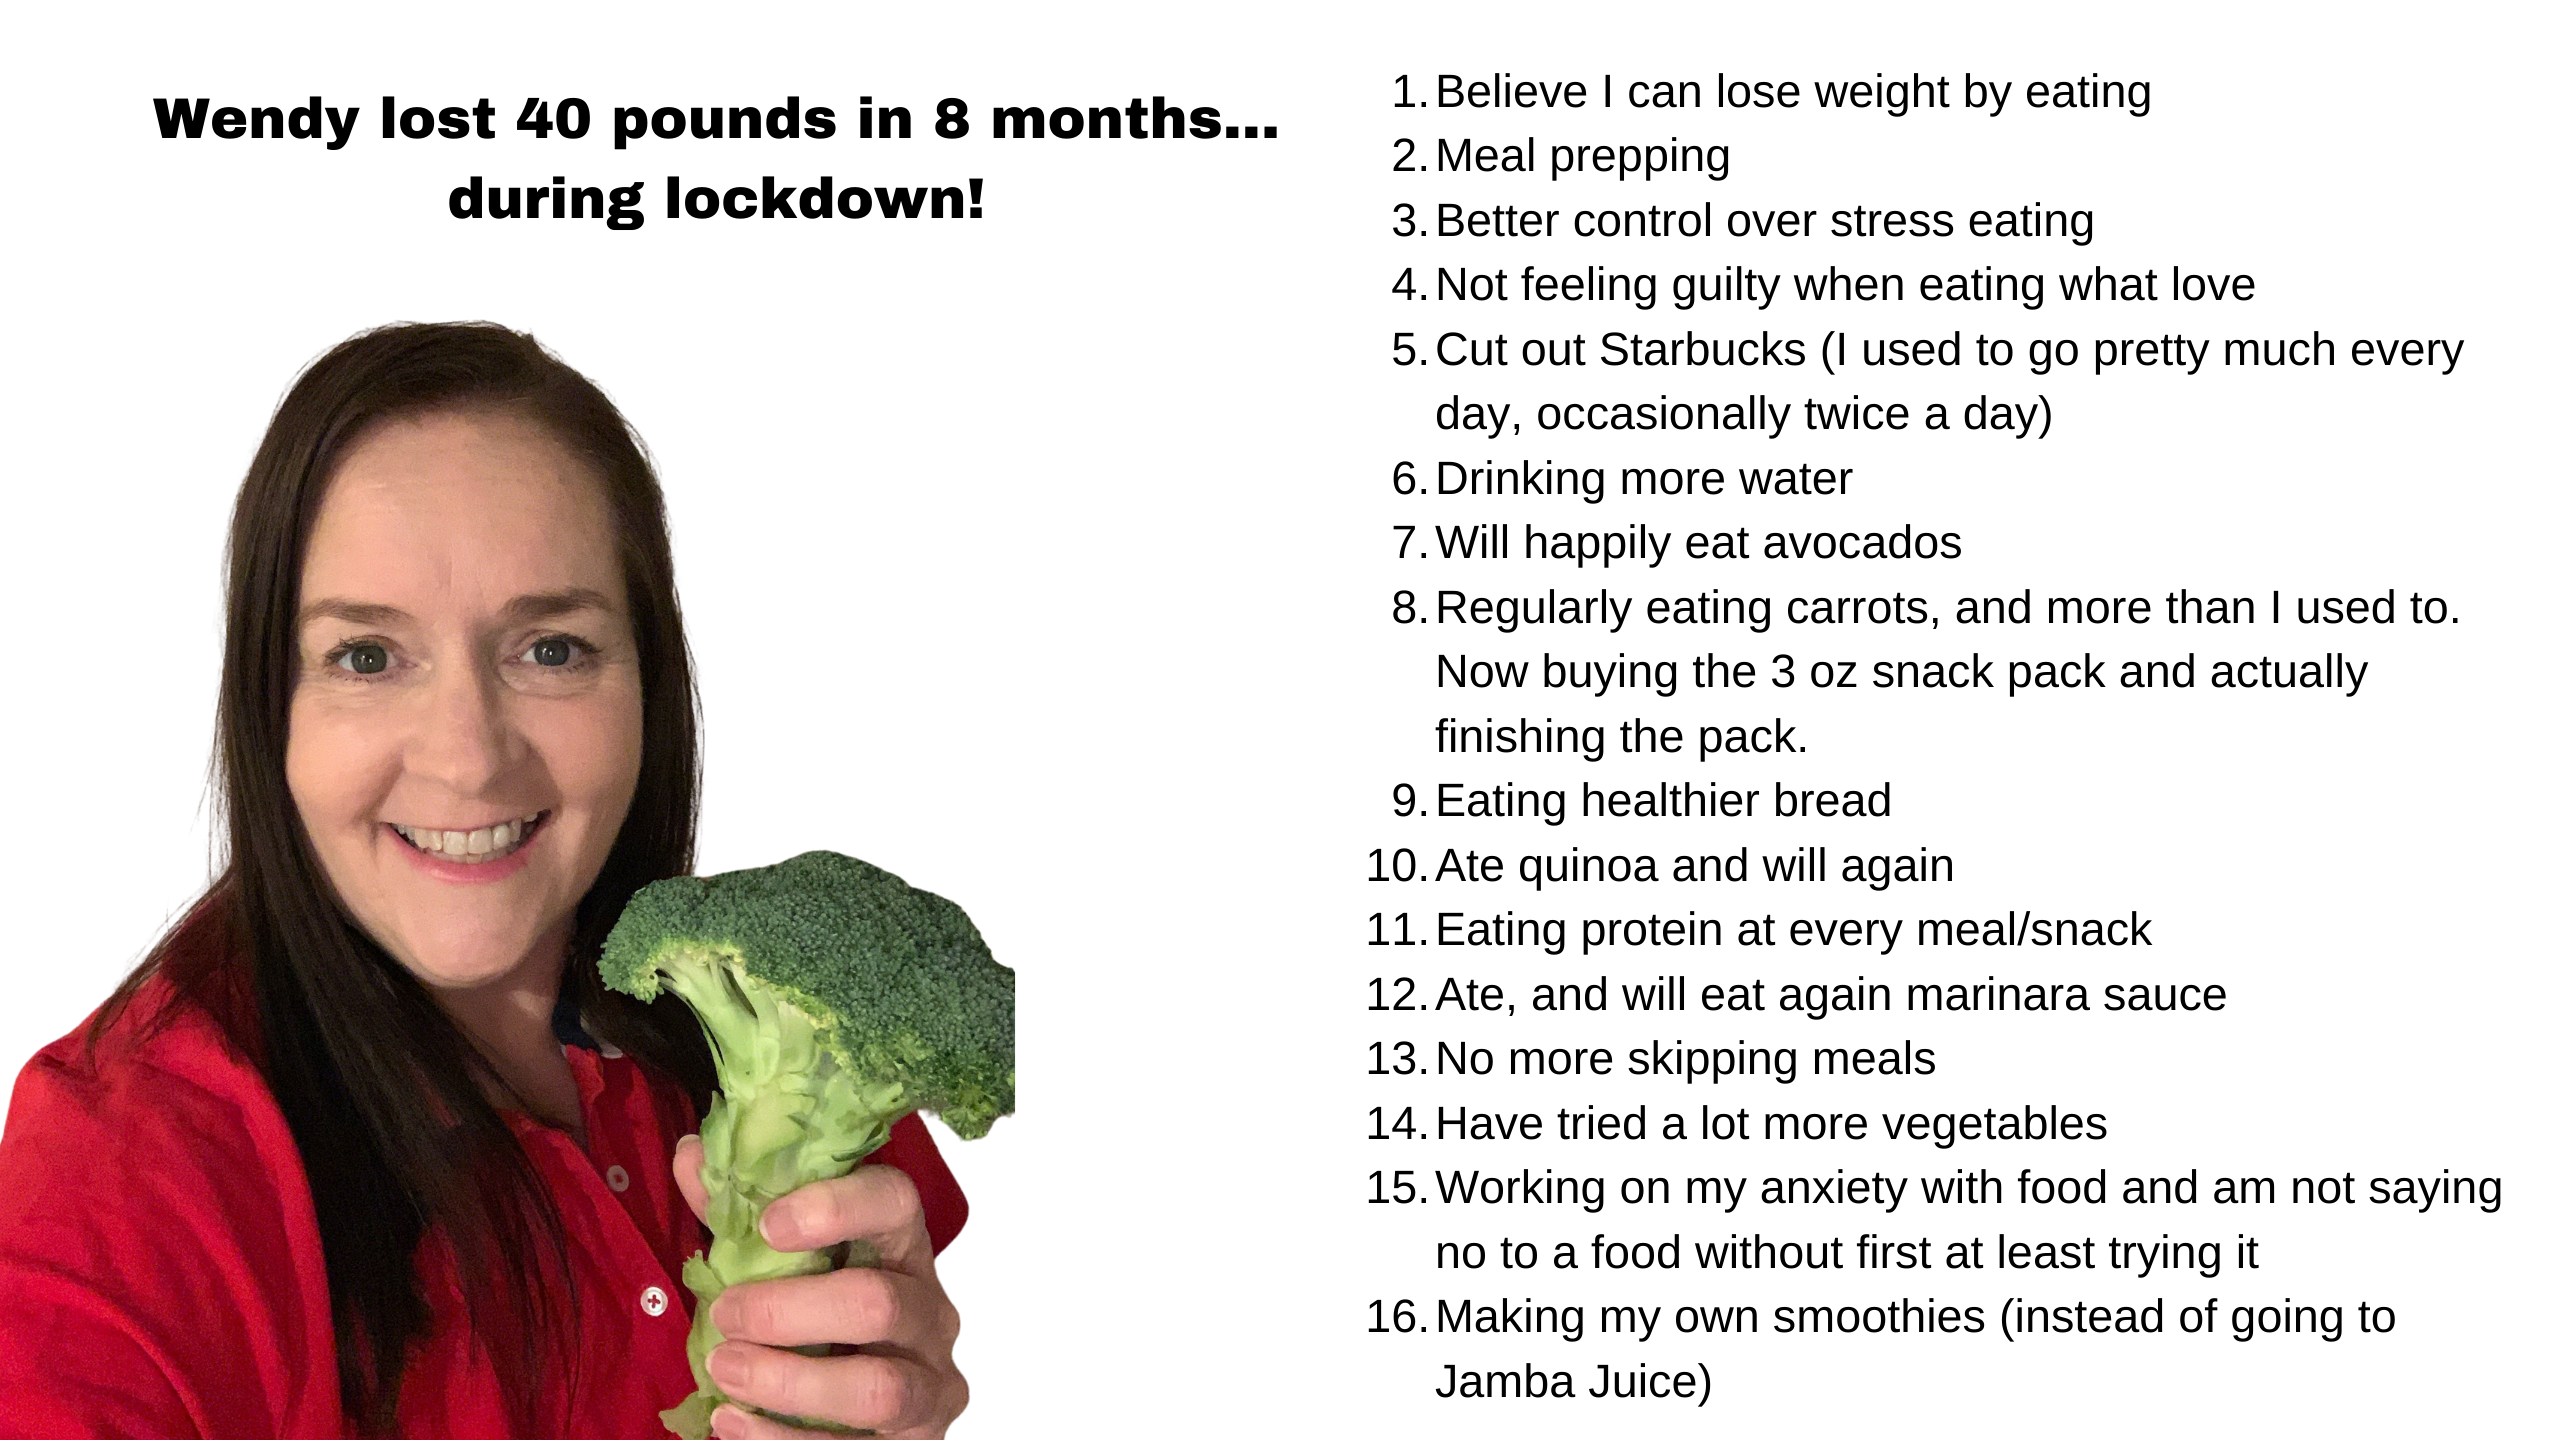 Wendy's Five Secrets to How She Lost 40 Pounds During Lockdown